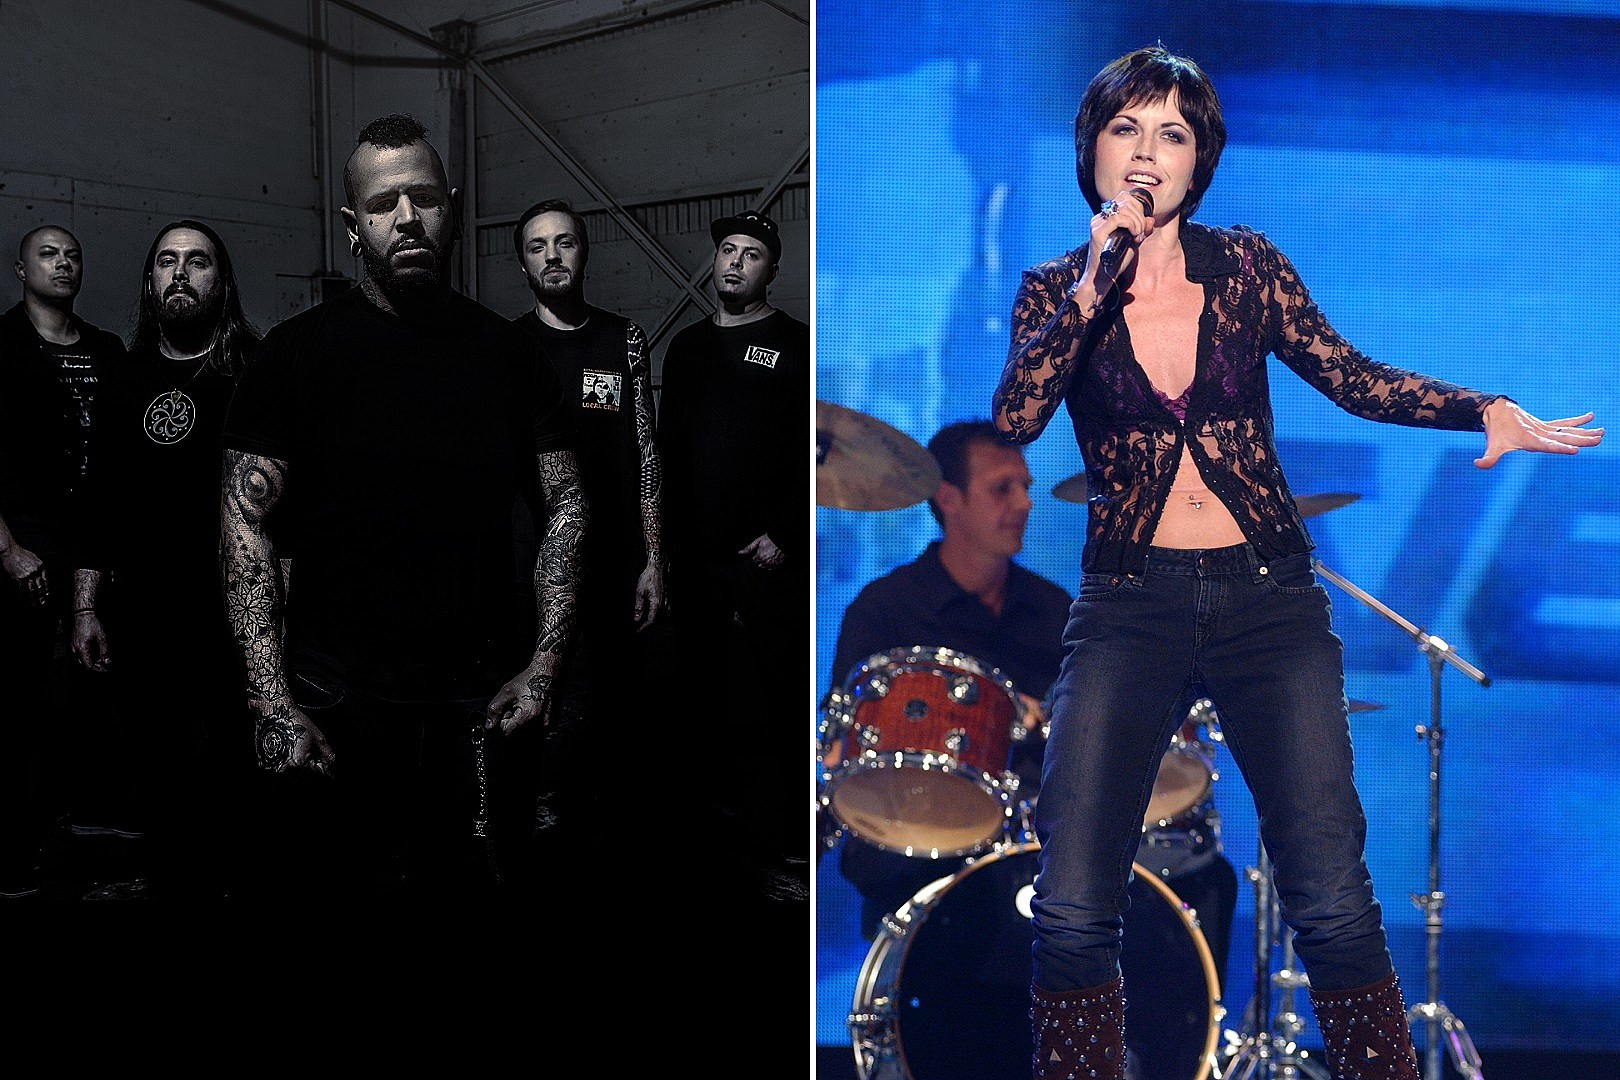 The Cranberries' Dolores O'Riordan Died Hours Before Scheduled Collaboration With Metal Band